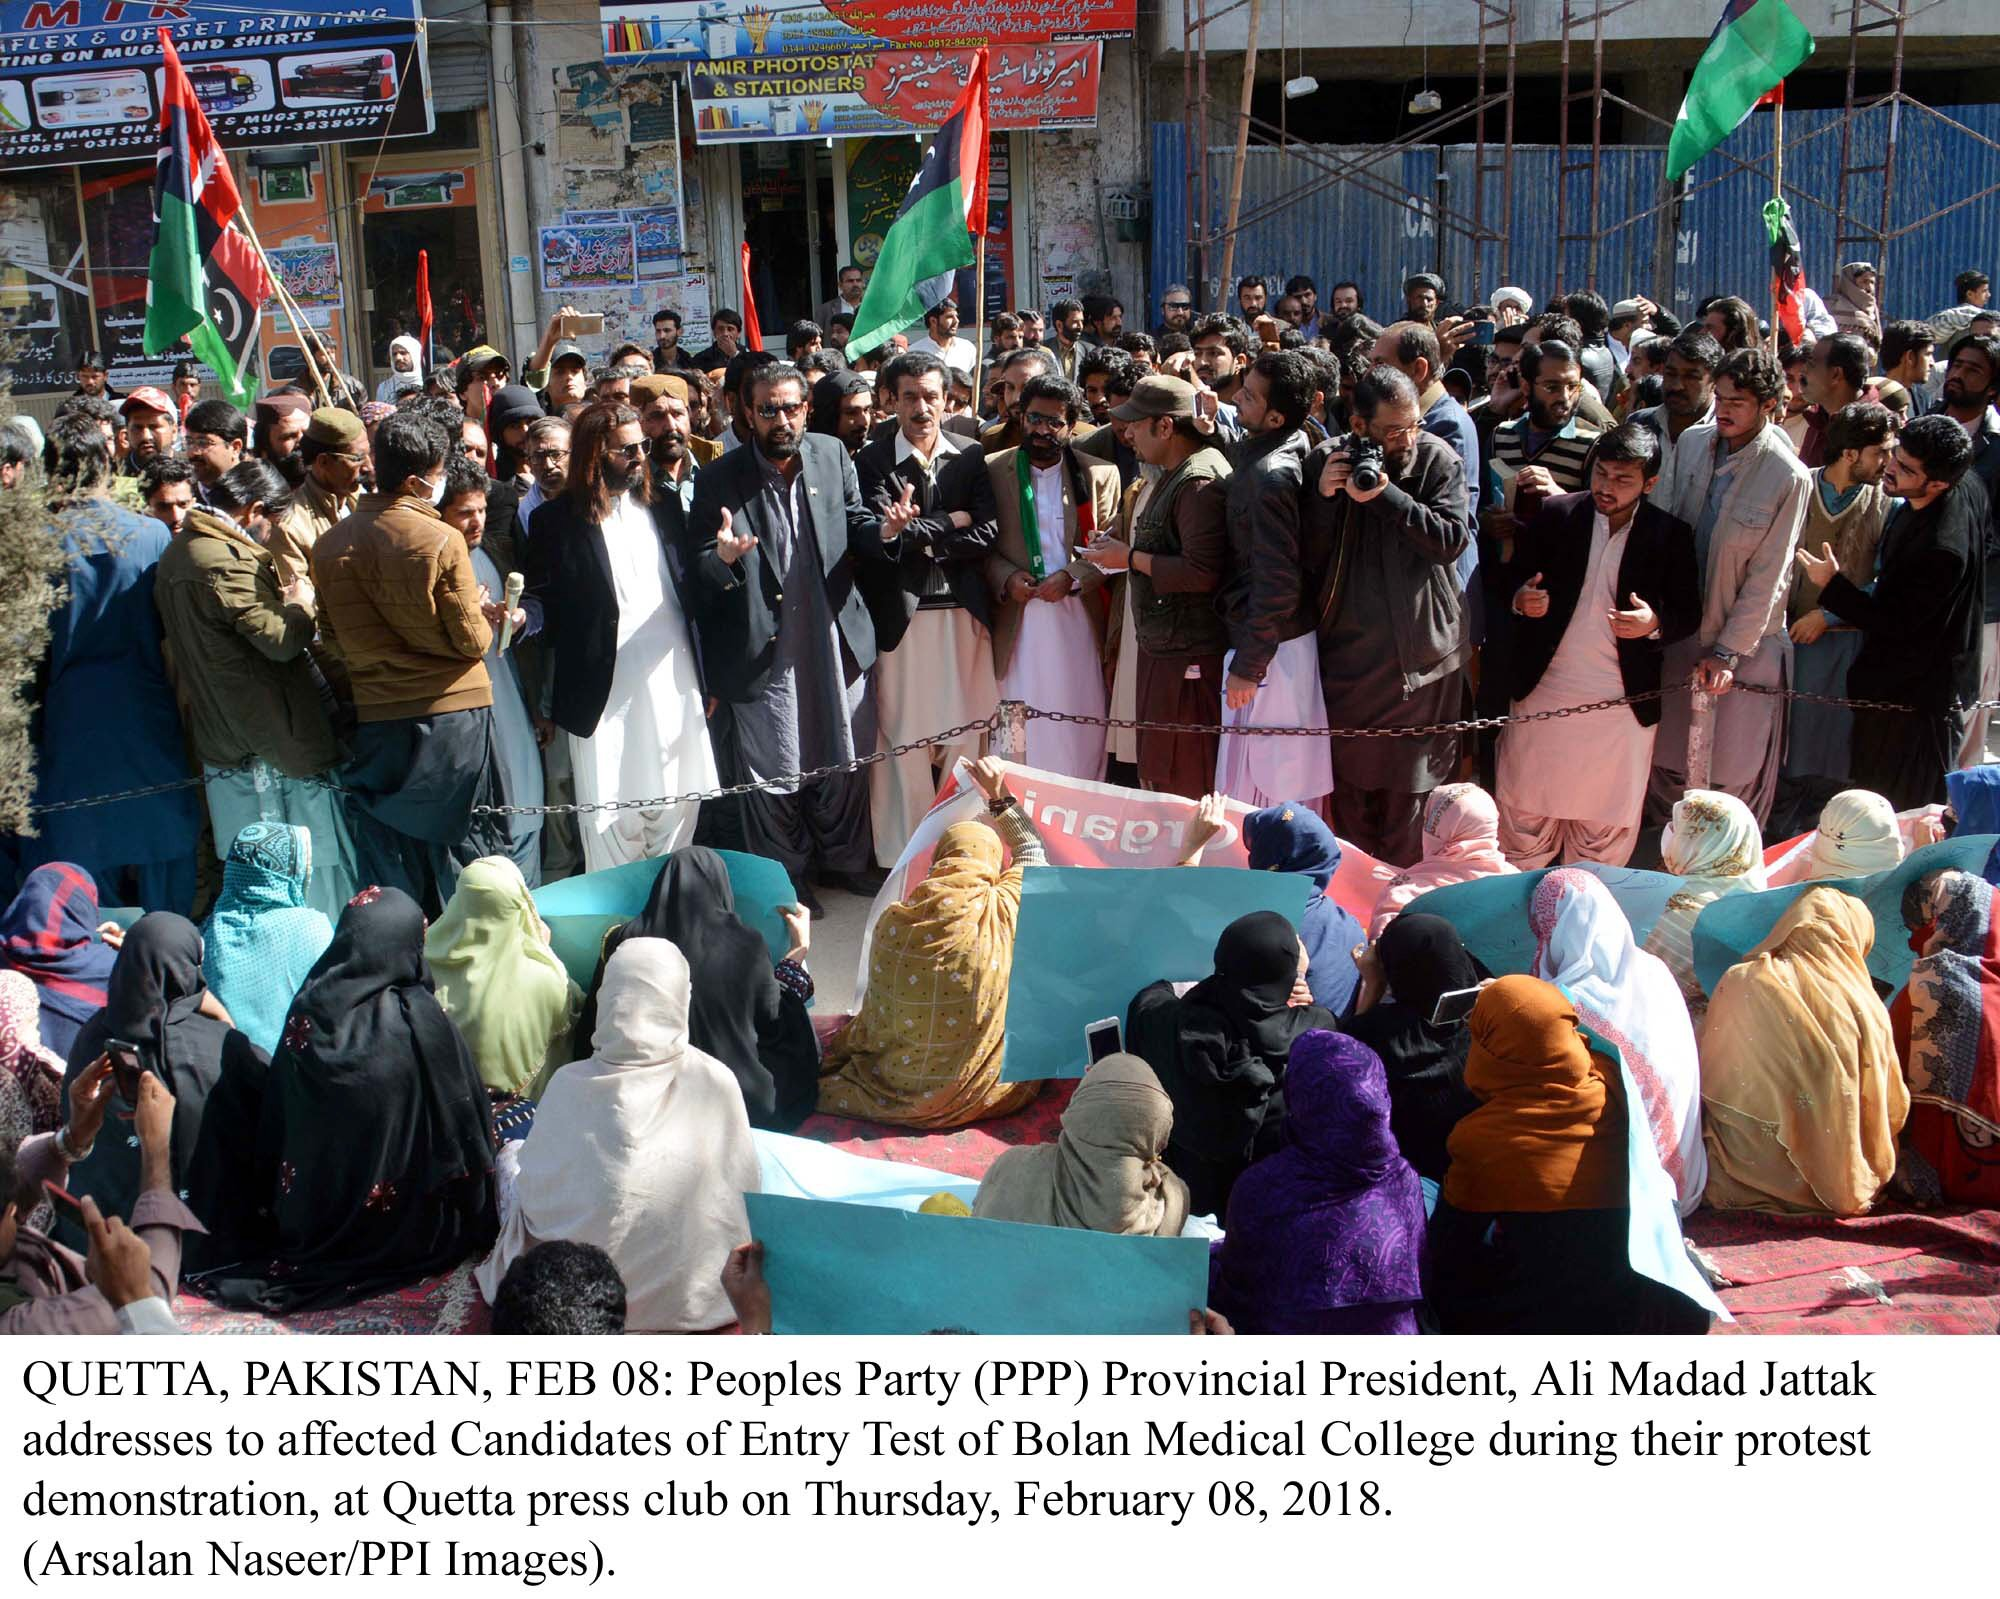 ppp provincial president ali madad jattak addresses students during their sit in protest outside the quetta press club photo ppi